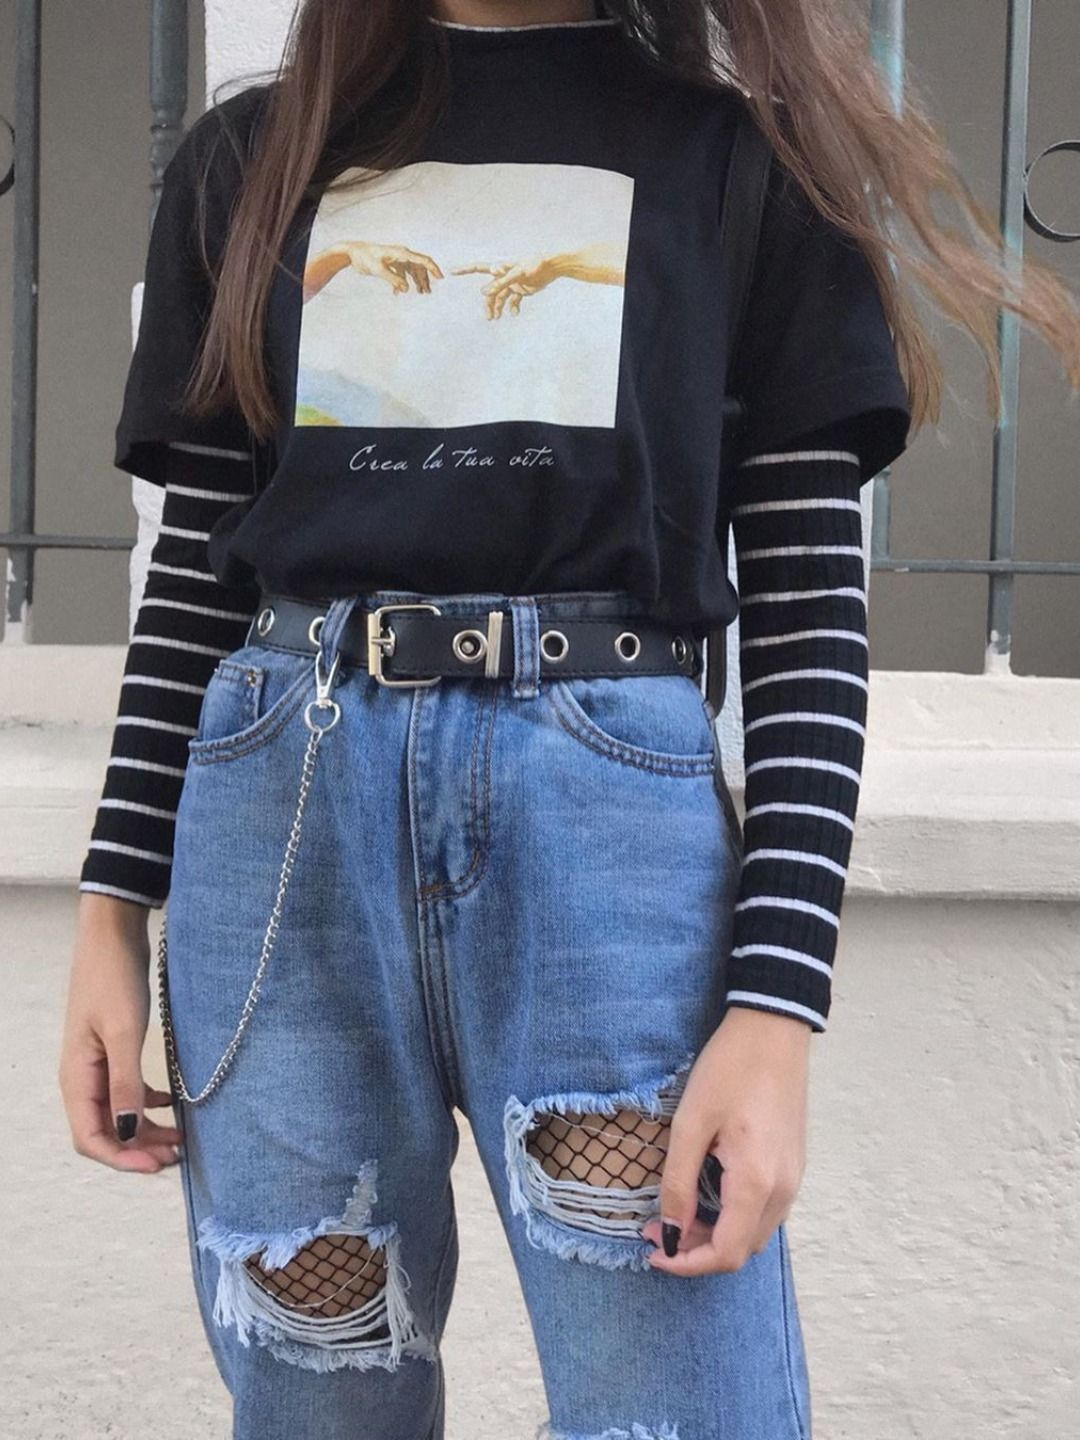 Tumblr Baddie Girl Fall Stylish Outfit High Waisted Ripped Blue Jeans Fishnet Stocking Tights Style